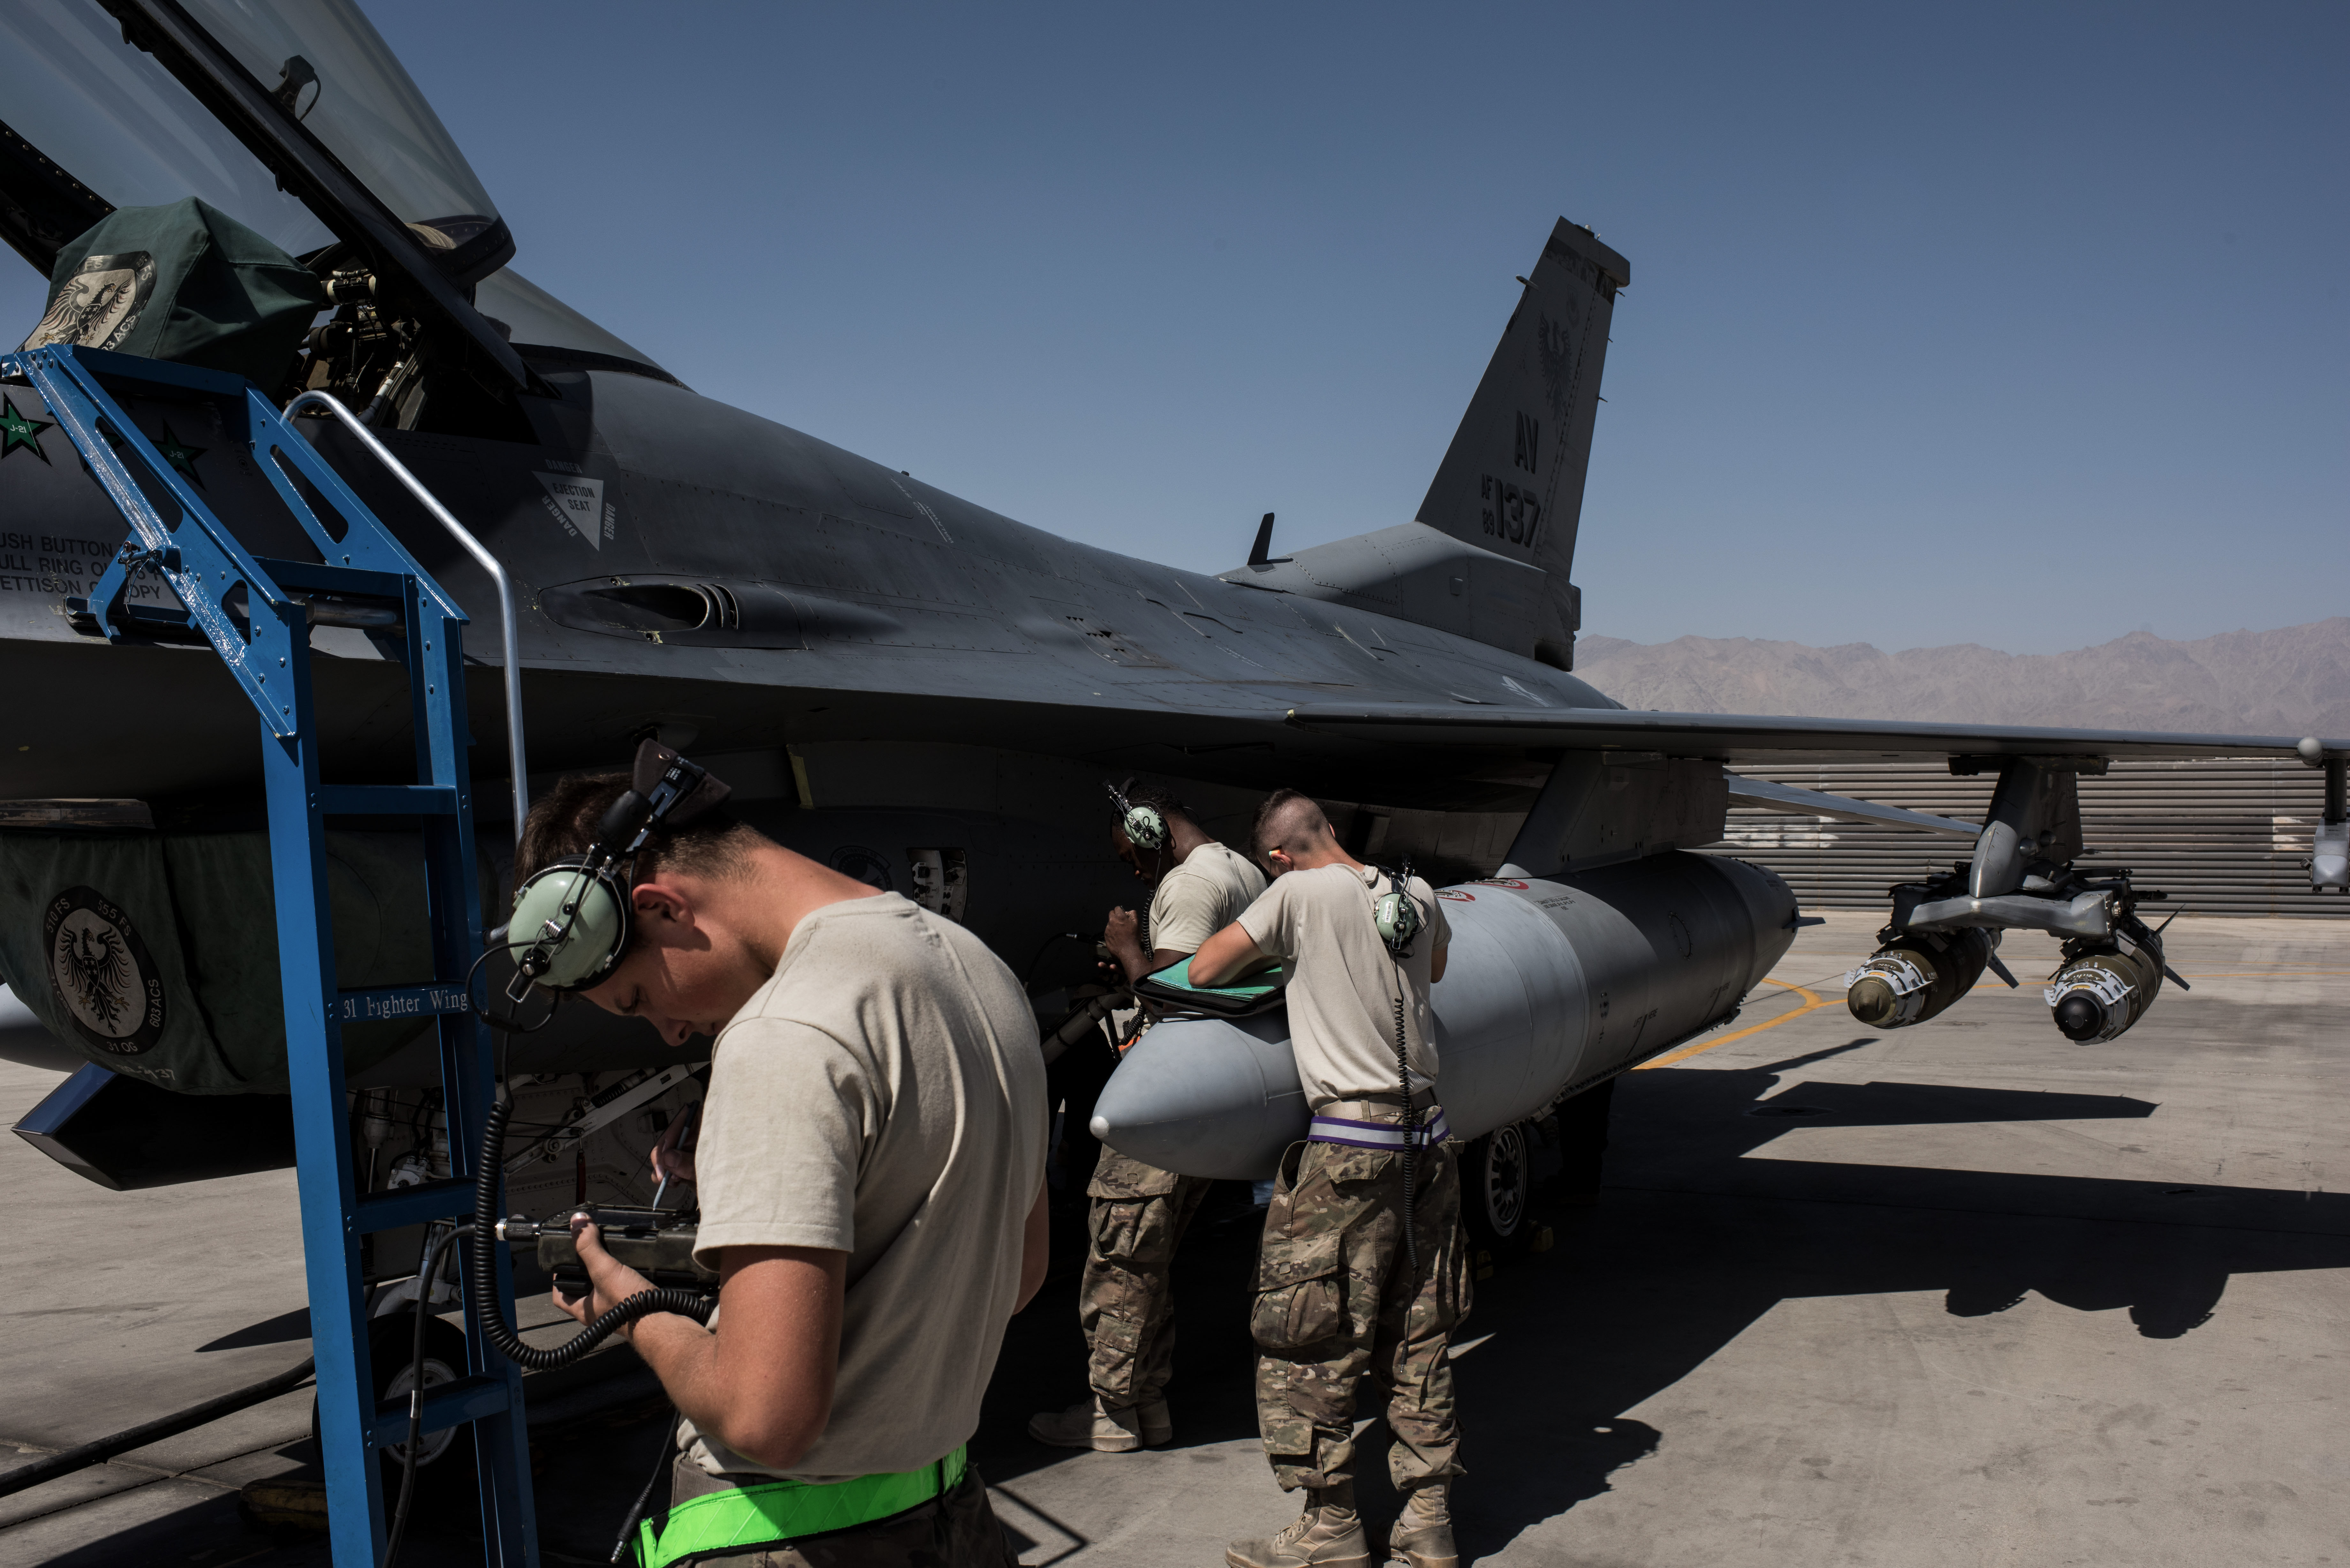 Members of the United States Air Force deployed for Mission Resolute Support prepare an F-16 Jet for a flight at Bagram Air Field on September 5, 2017 in Bagram, Afghanistan. (Photo by Andrew Renneisen/Getty Images)